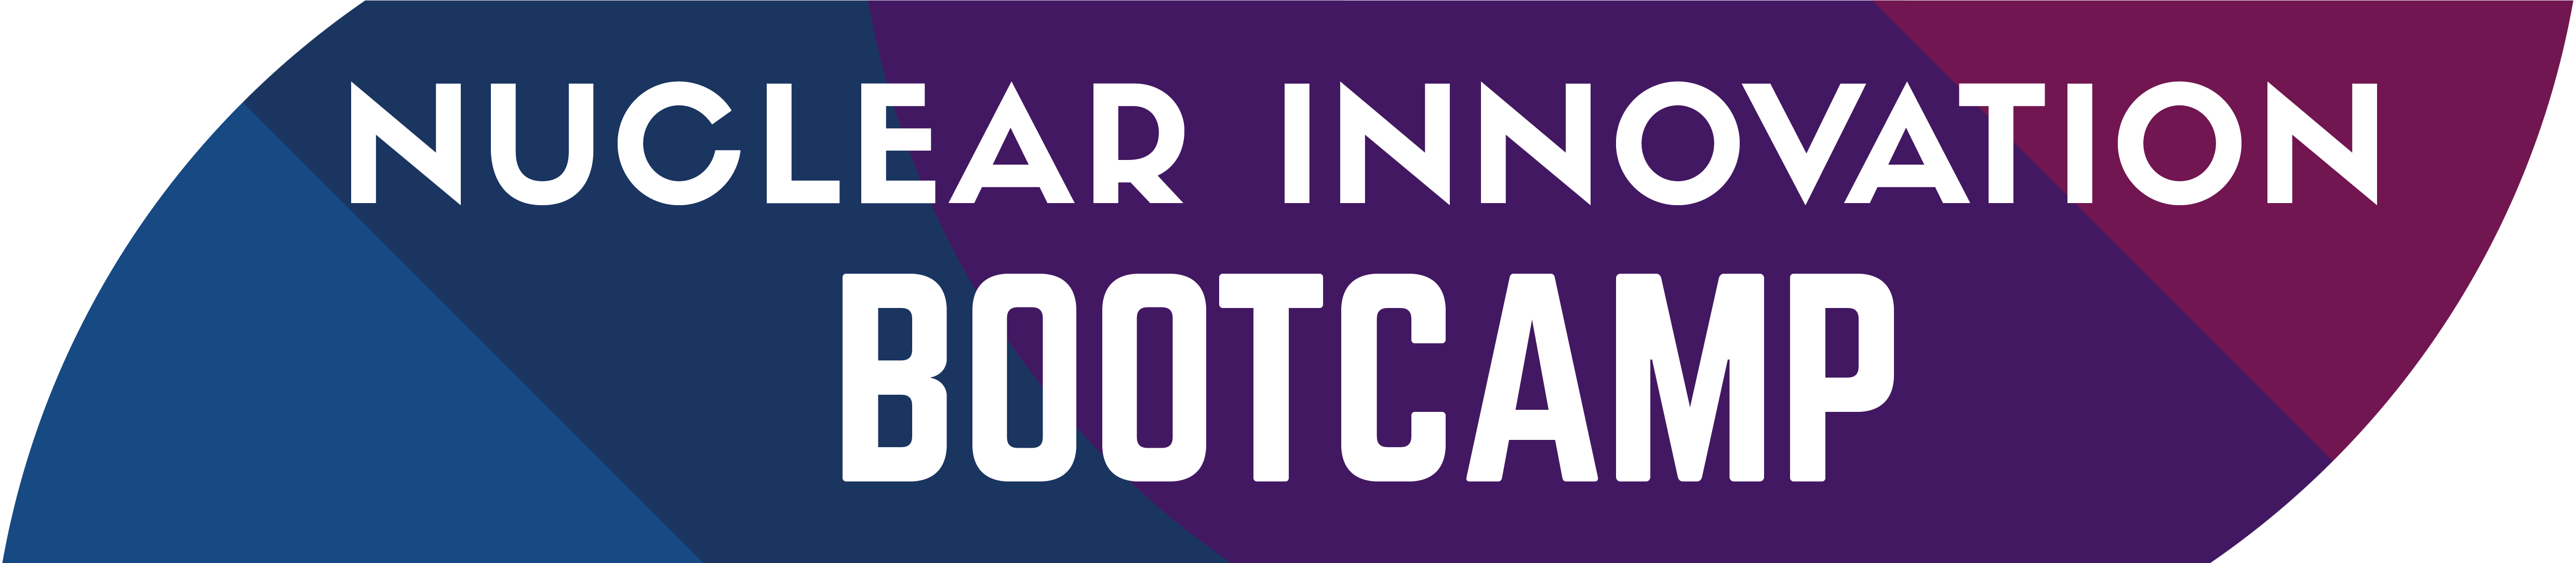 Nuclear Innovation Bootcamp